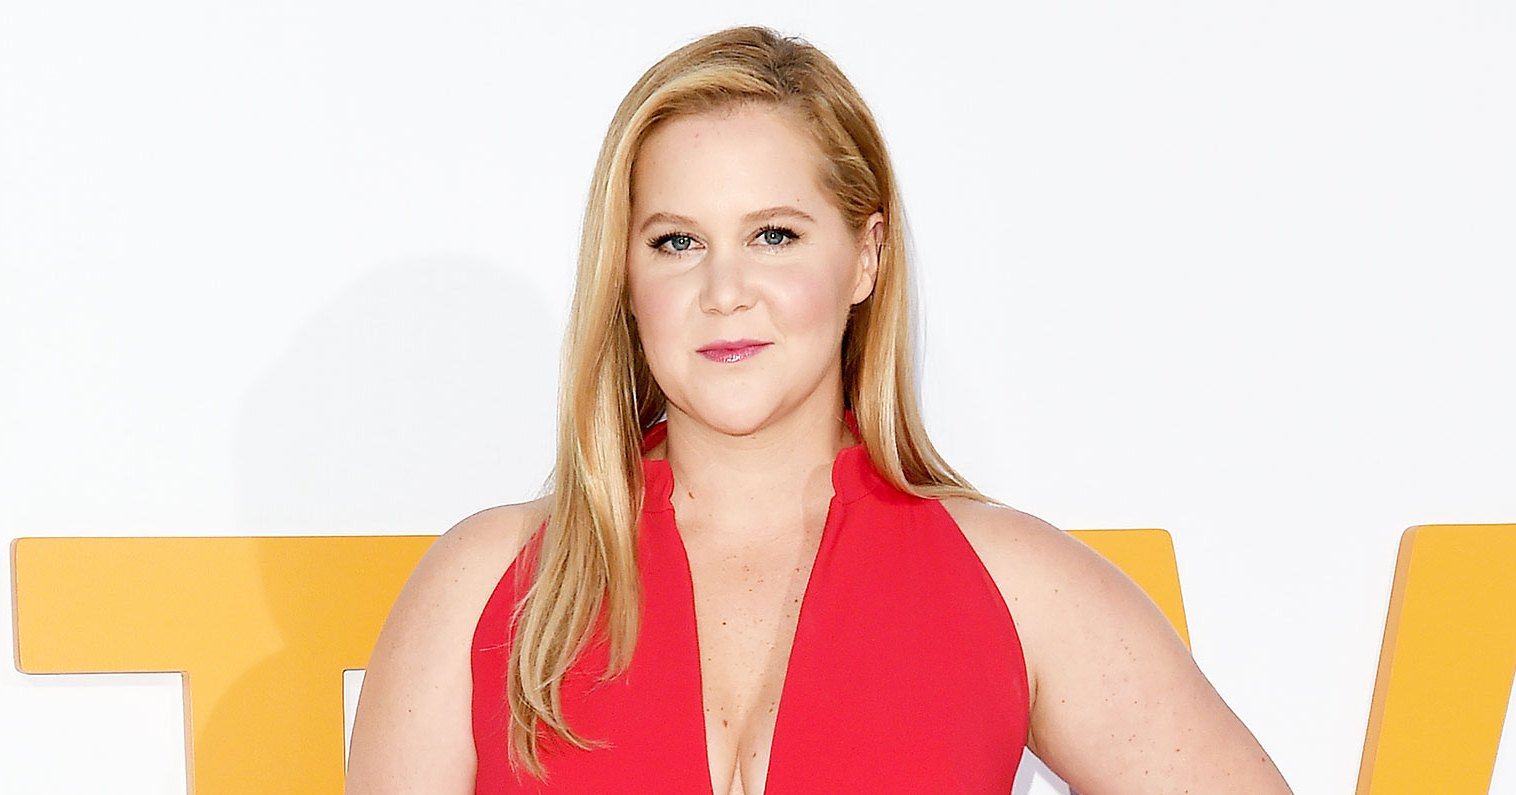 Amy Schumer Hits Stage 2 Weeks After Giving Birth: 'I'm Back'